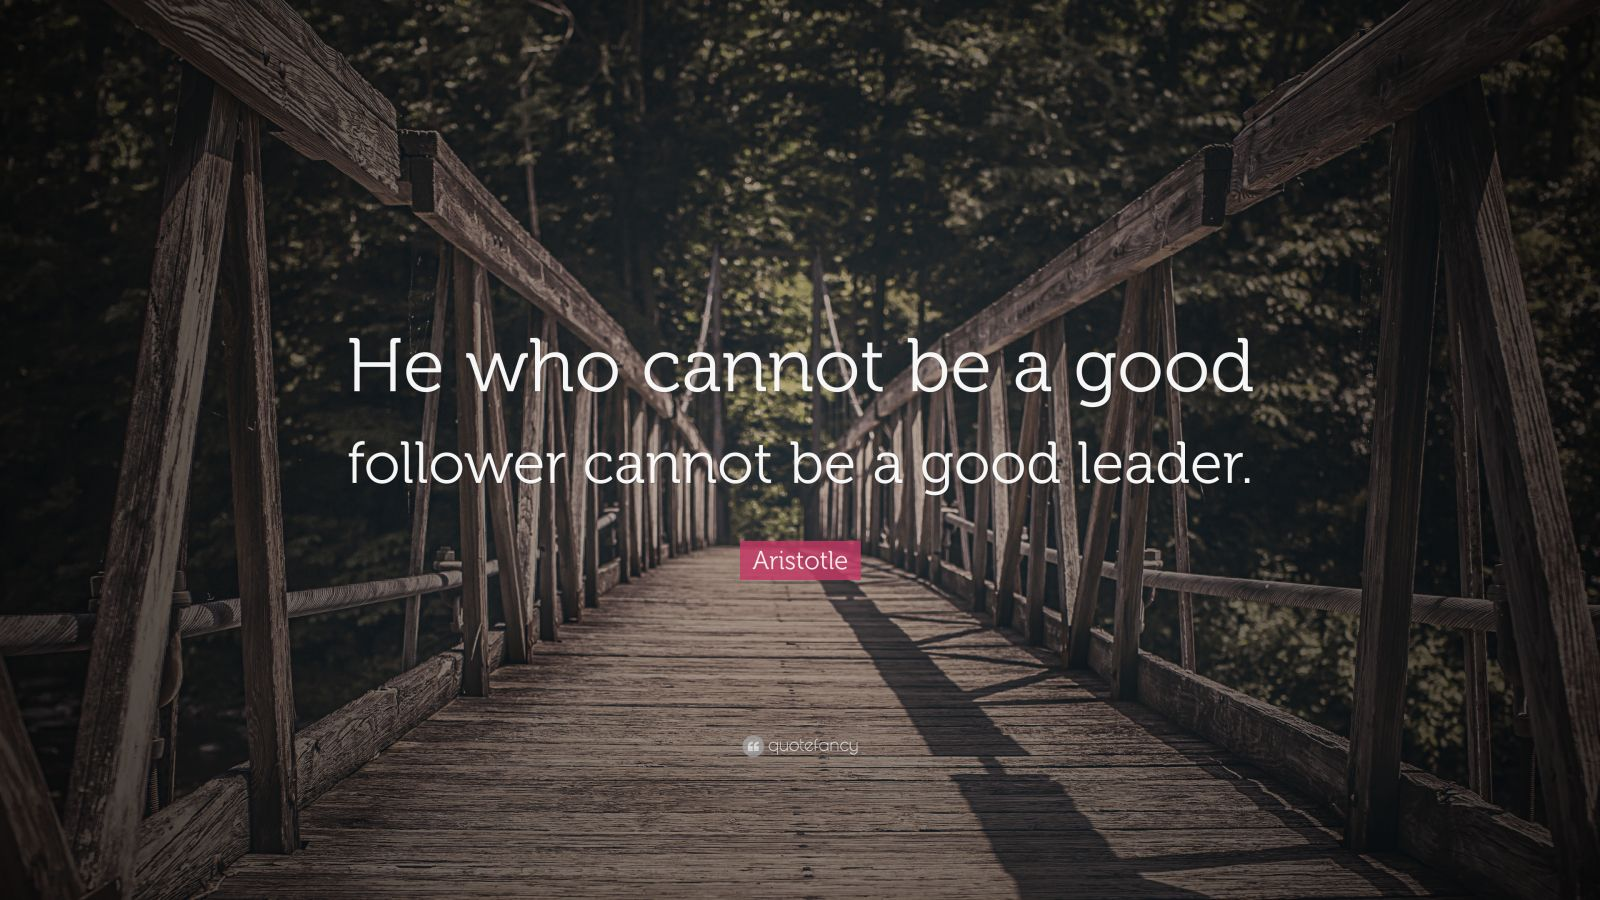 """25 Best Aristotle Quotes On Pinterest: Aristotle Quote: """"He Who Cannot Be A Good Follower Cannot"""